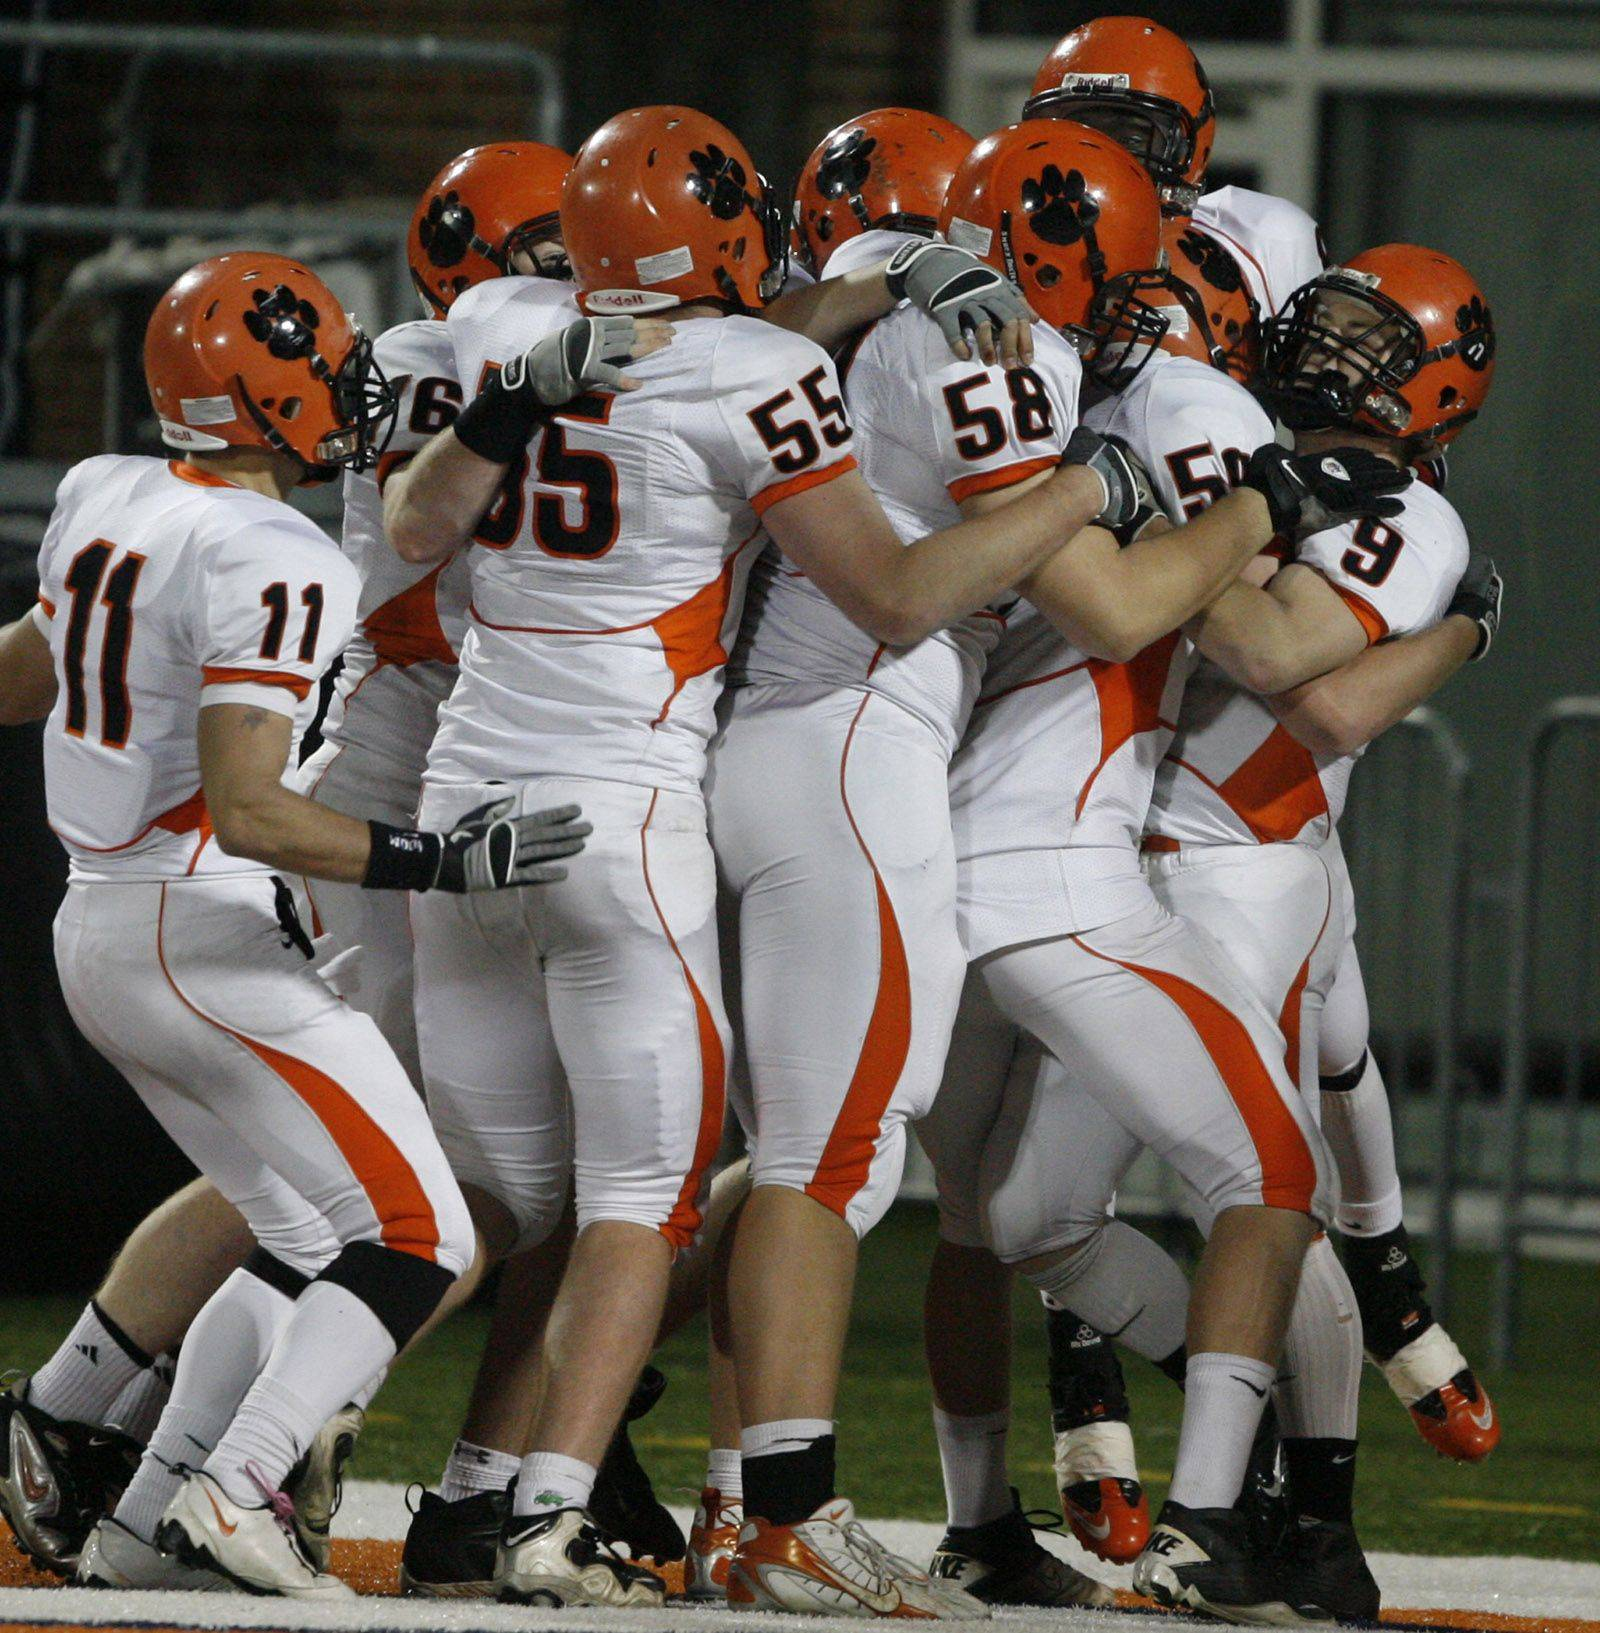 Wheaton Warrenville South celebrates a touchdown against Lake Zurich in the 7A state title game in Champaign on Saturday, November 27.